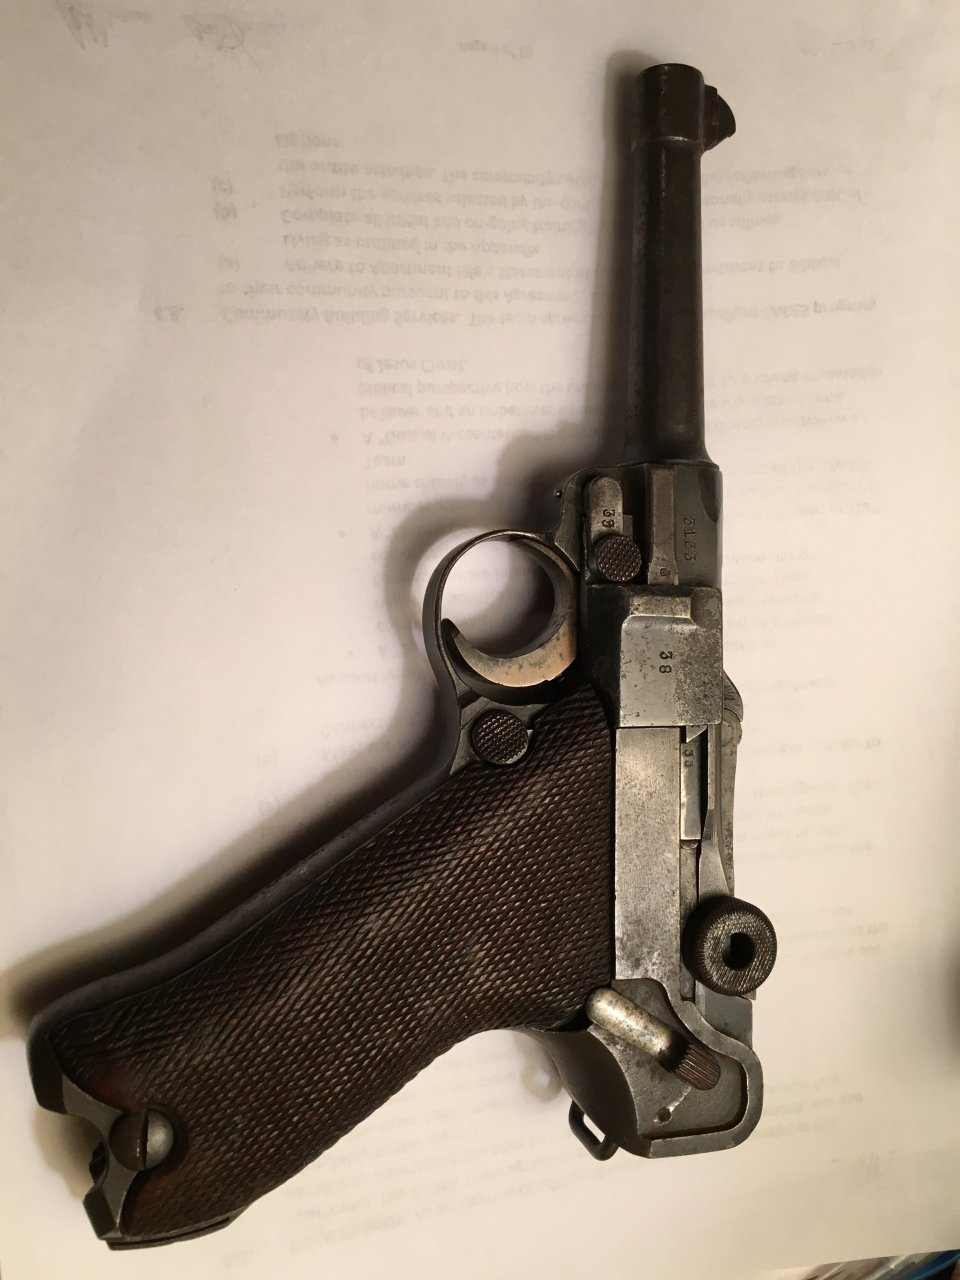 Value Of Luger With 1918 And 1920 Markings | Gun Values Board